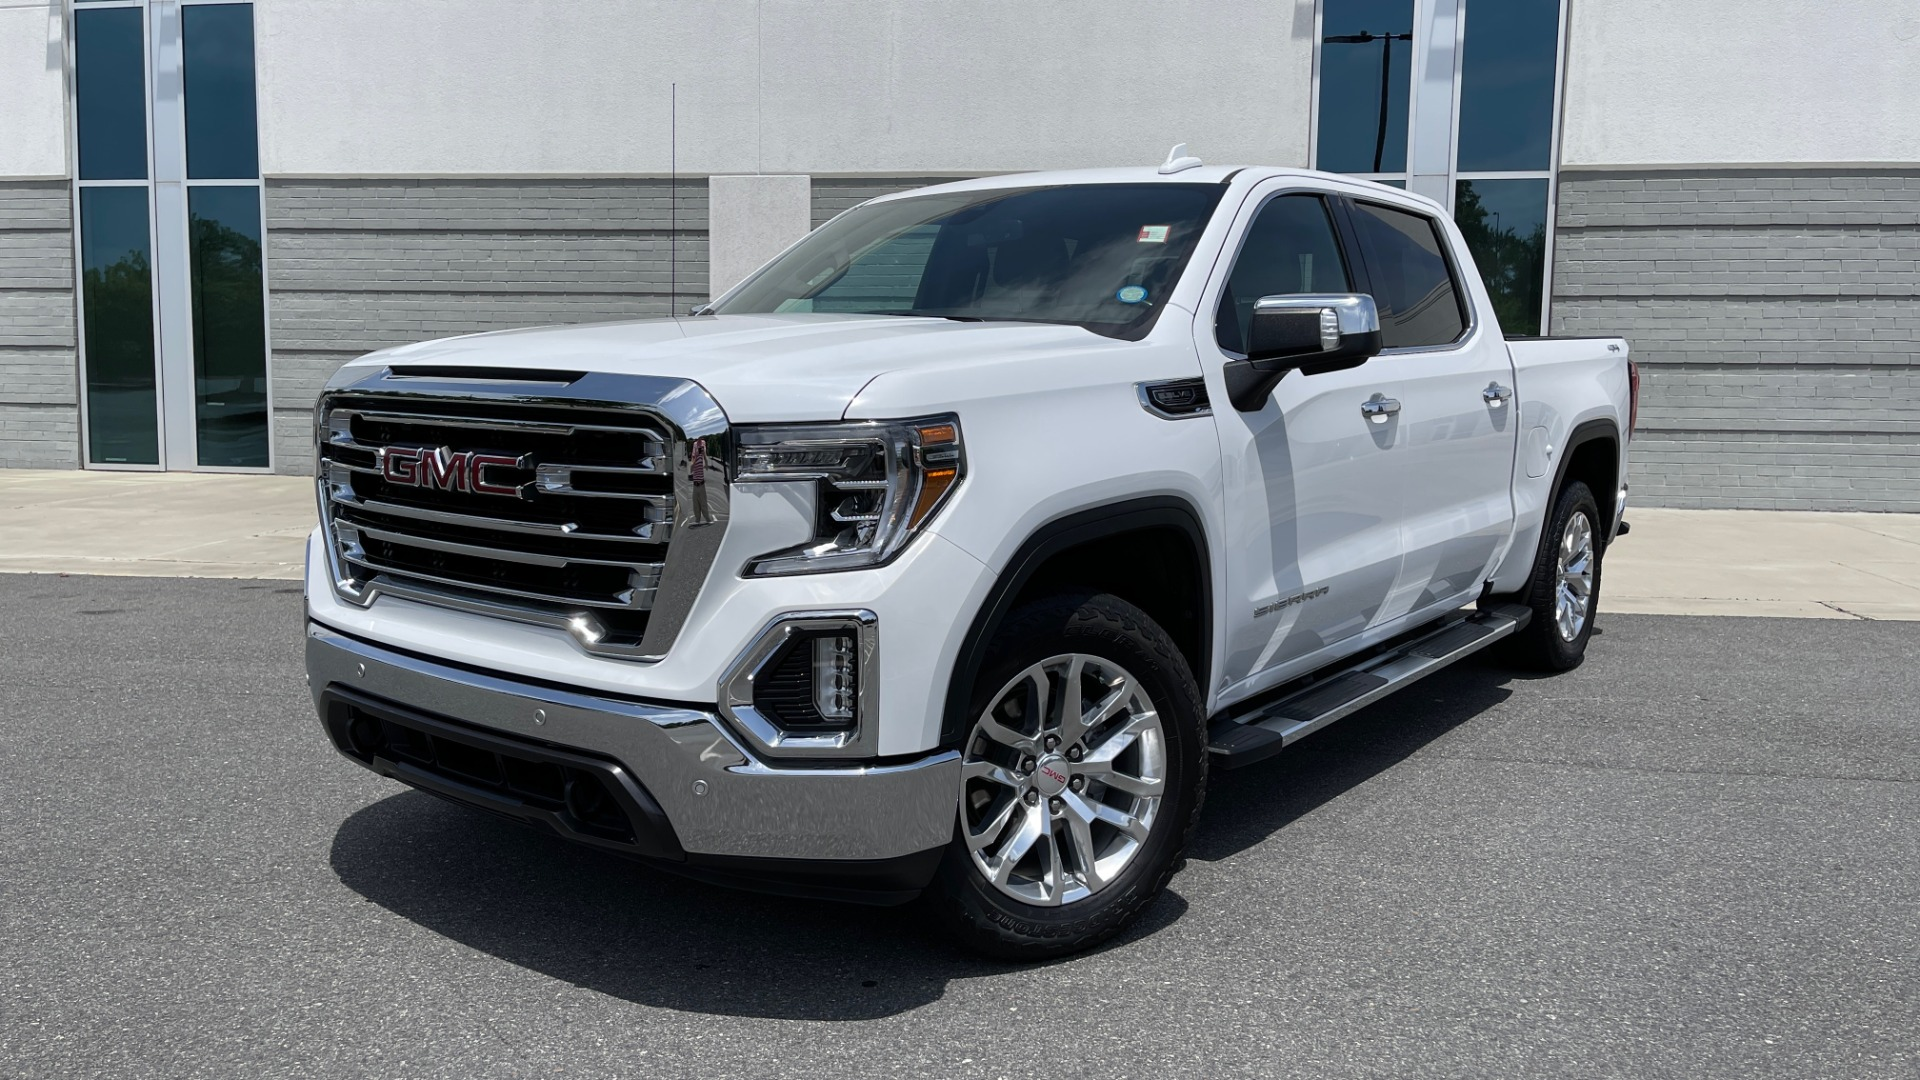 Used 2019 GMC SIERRA 1500 SLT 4X4 CREWCAB / 5.3L V8 / 8-SPD AUTO / NAV / BOSE / REARVIEW for sale $49,999 at Formula Imports in Charlotte NC 28227 1